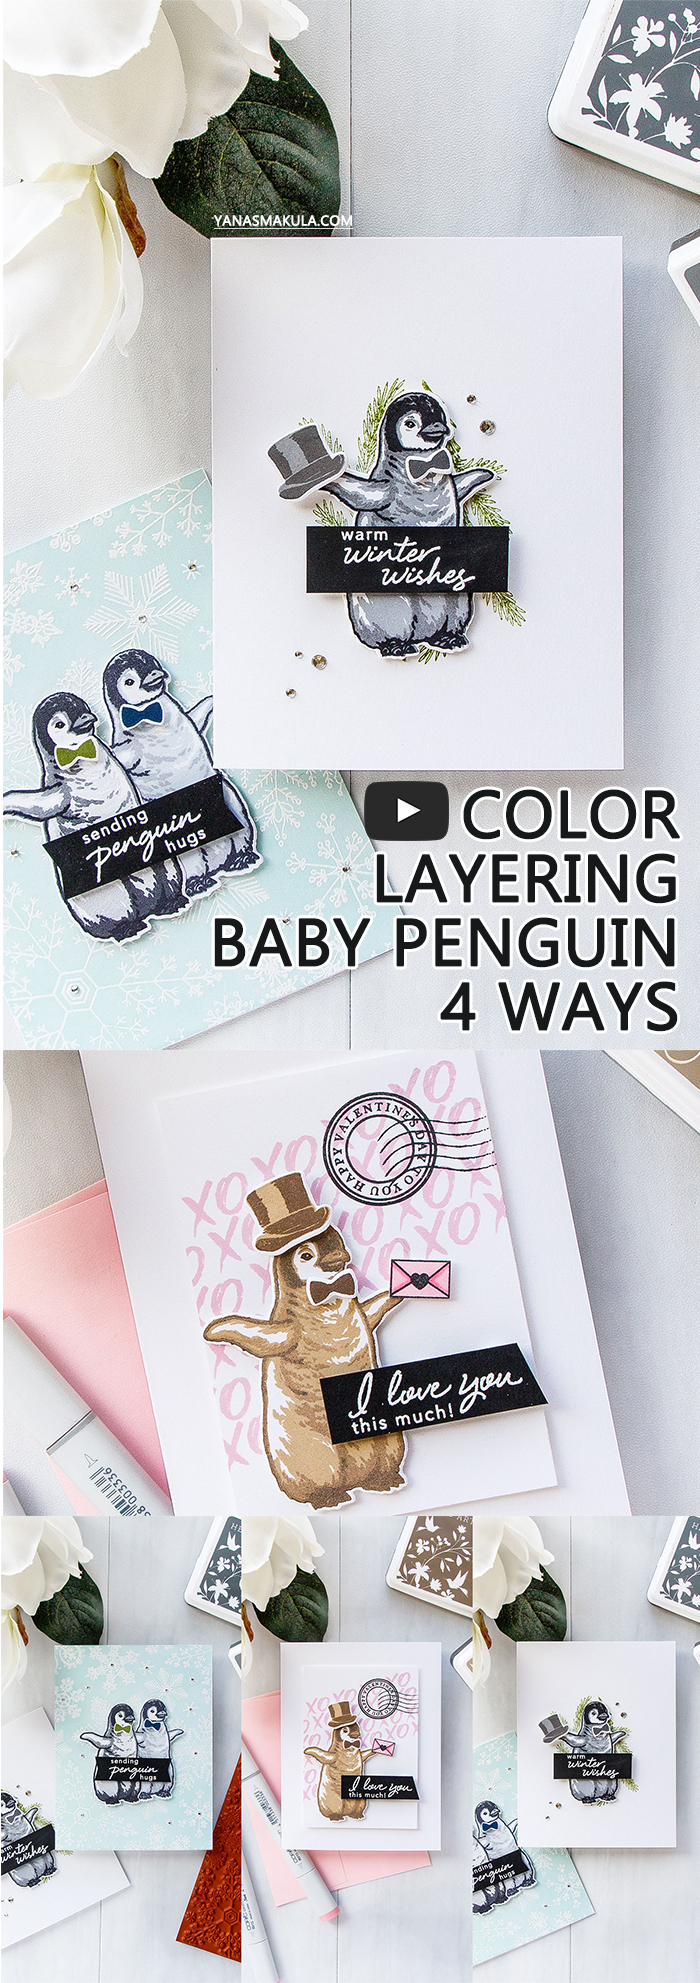 Hero Arts | Color Layering With Yana Video Series – Color Layering Baby Penguin 4 Ways